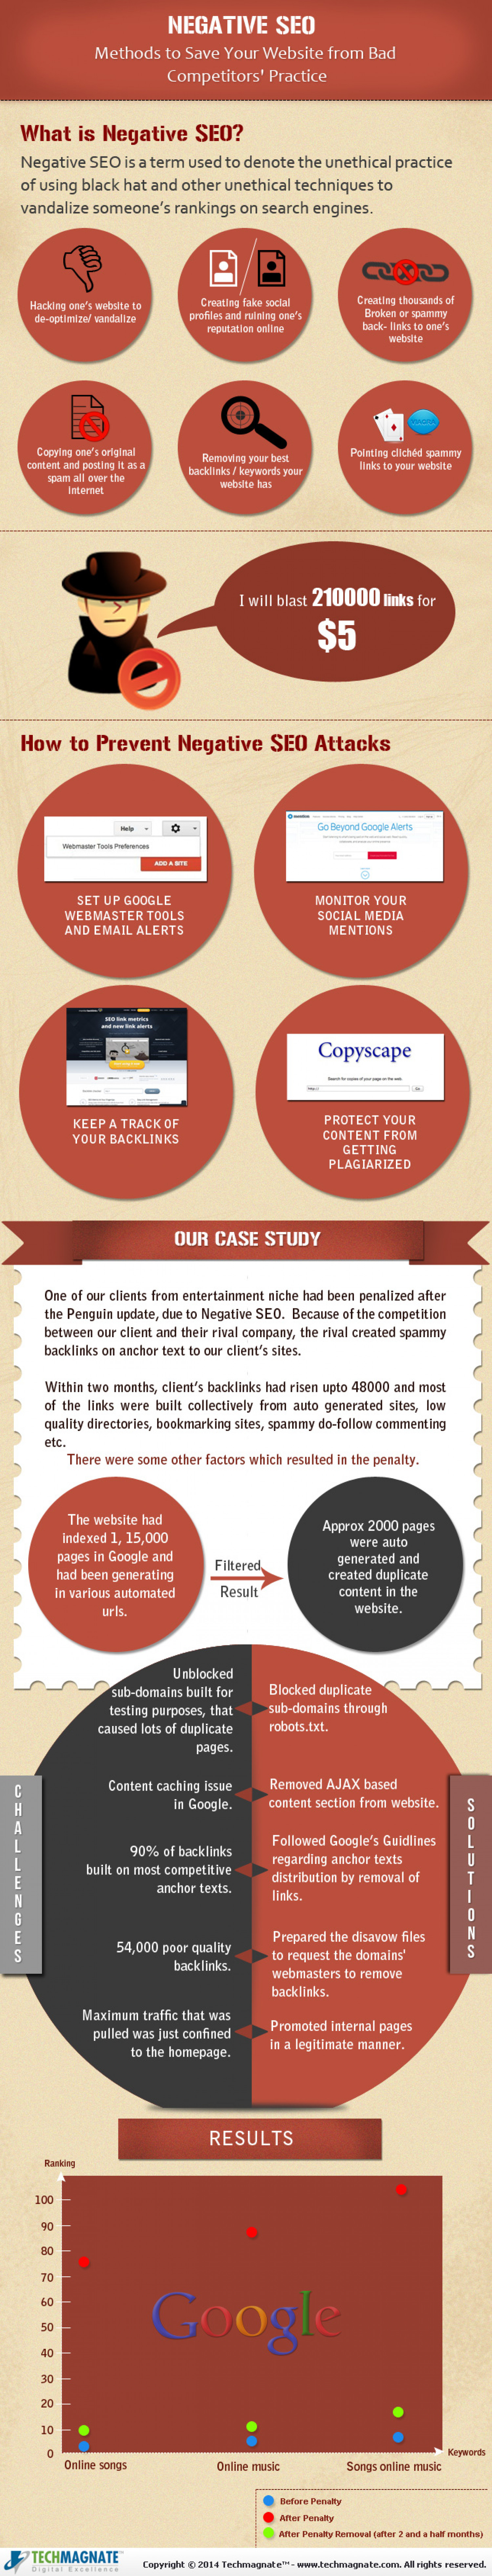 Negative SEO – Methods to Save Your Website from Bad Competitors' Practice  Infographic